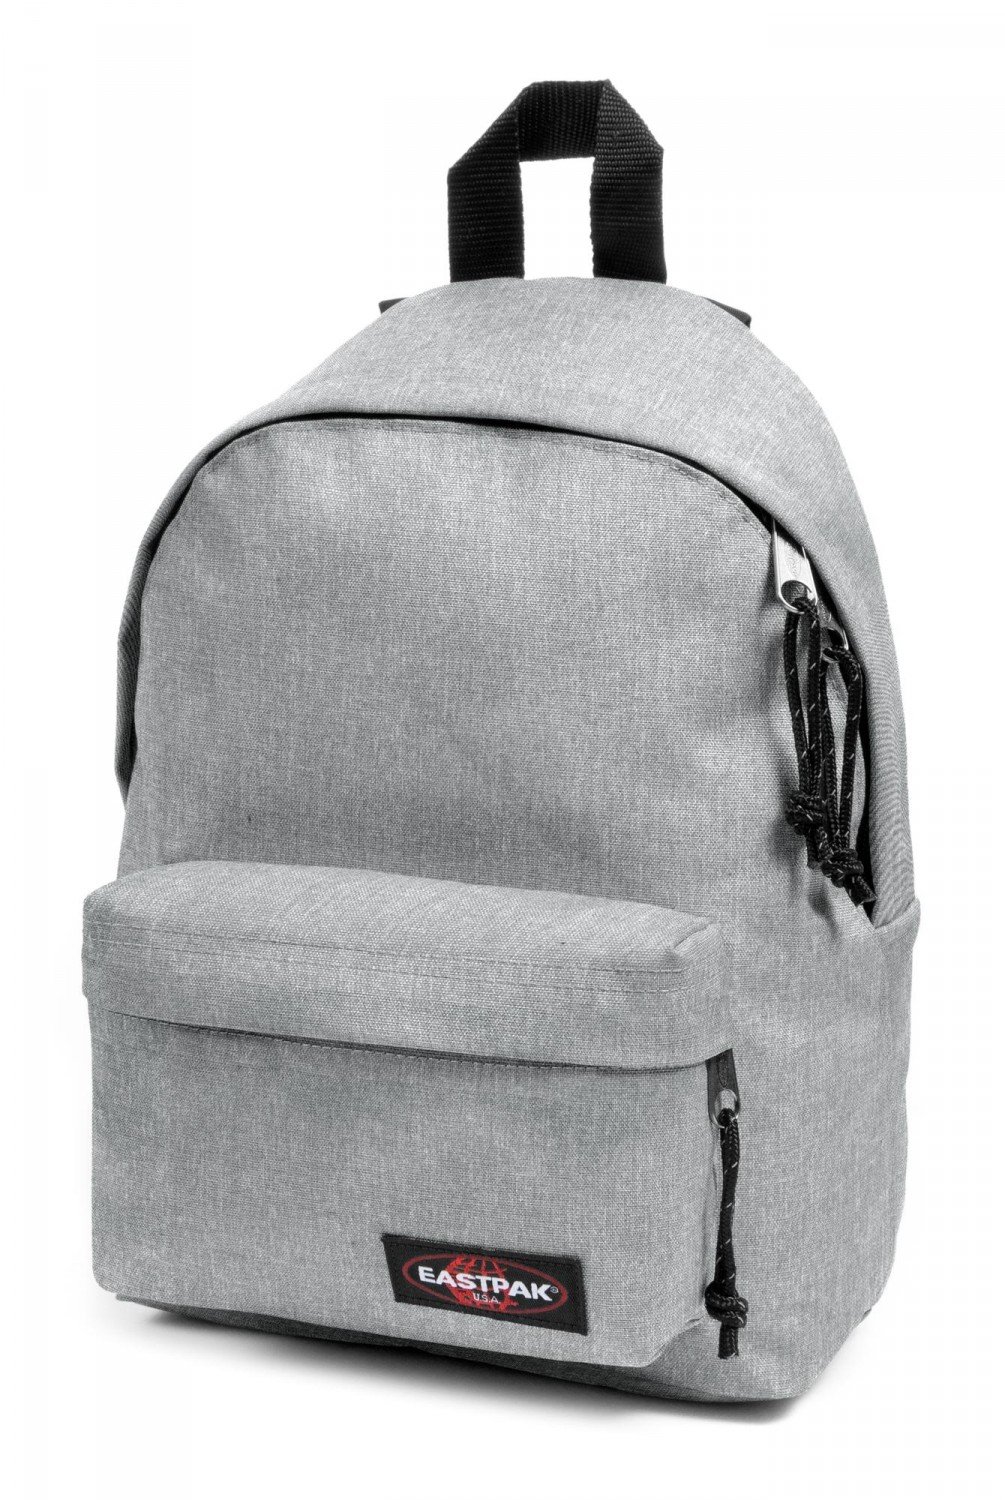 eastpak orbit ek043363 rucksack sunday grey grau 10 liter. Black Bedroom Furniture Sets. Home Design Ideas